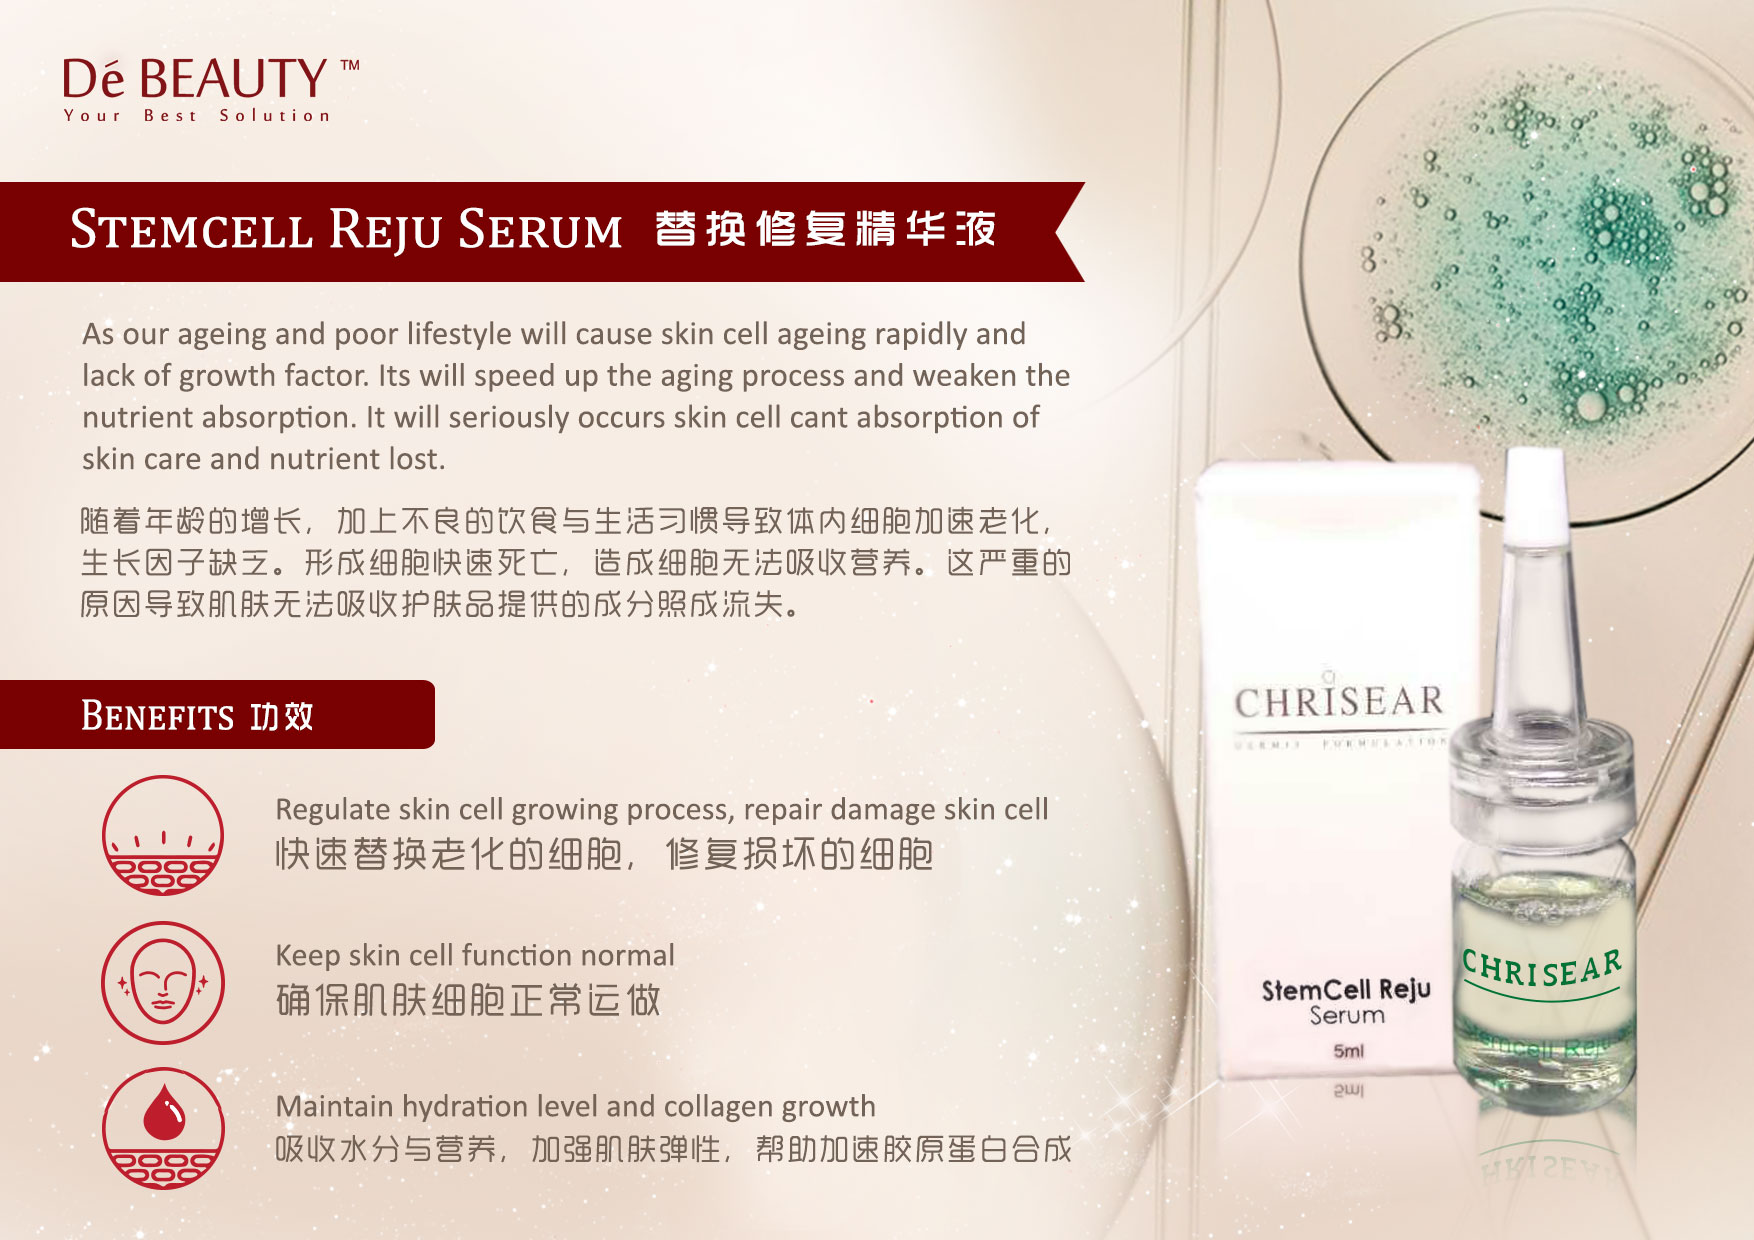 De Beauty Chrisear Stemcell Reju Serum